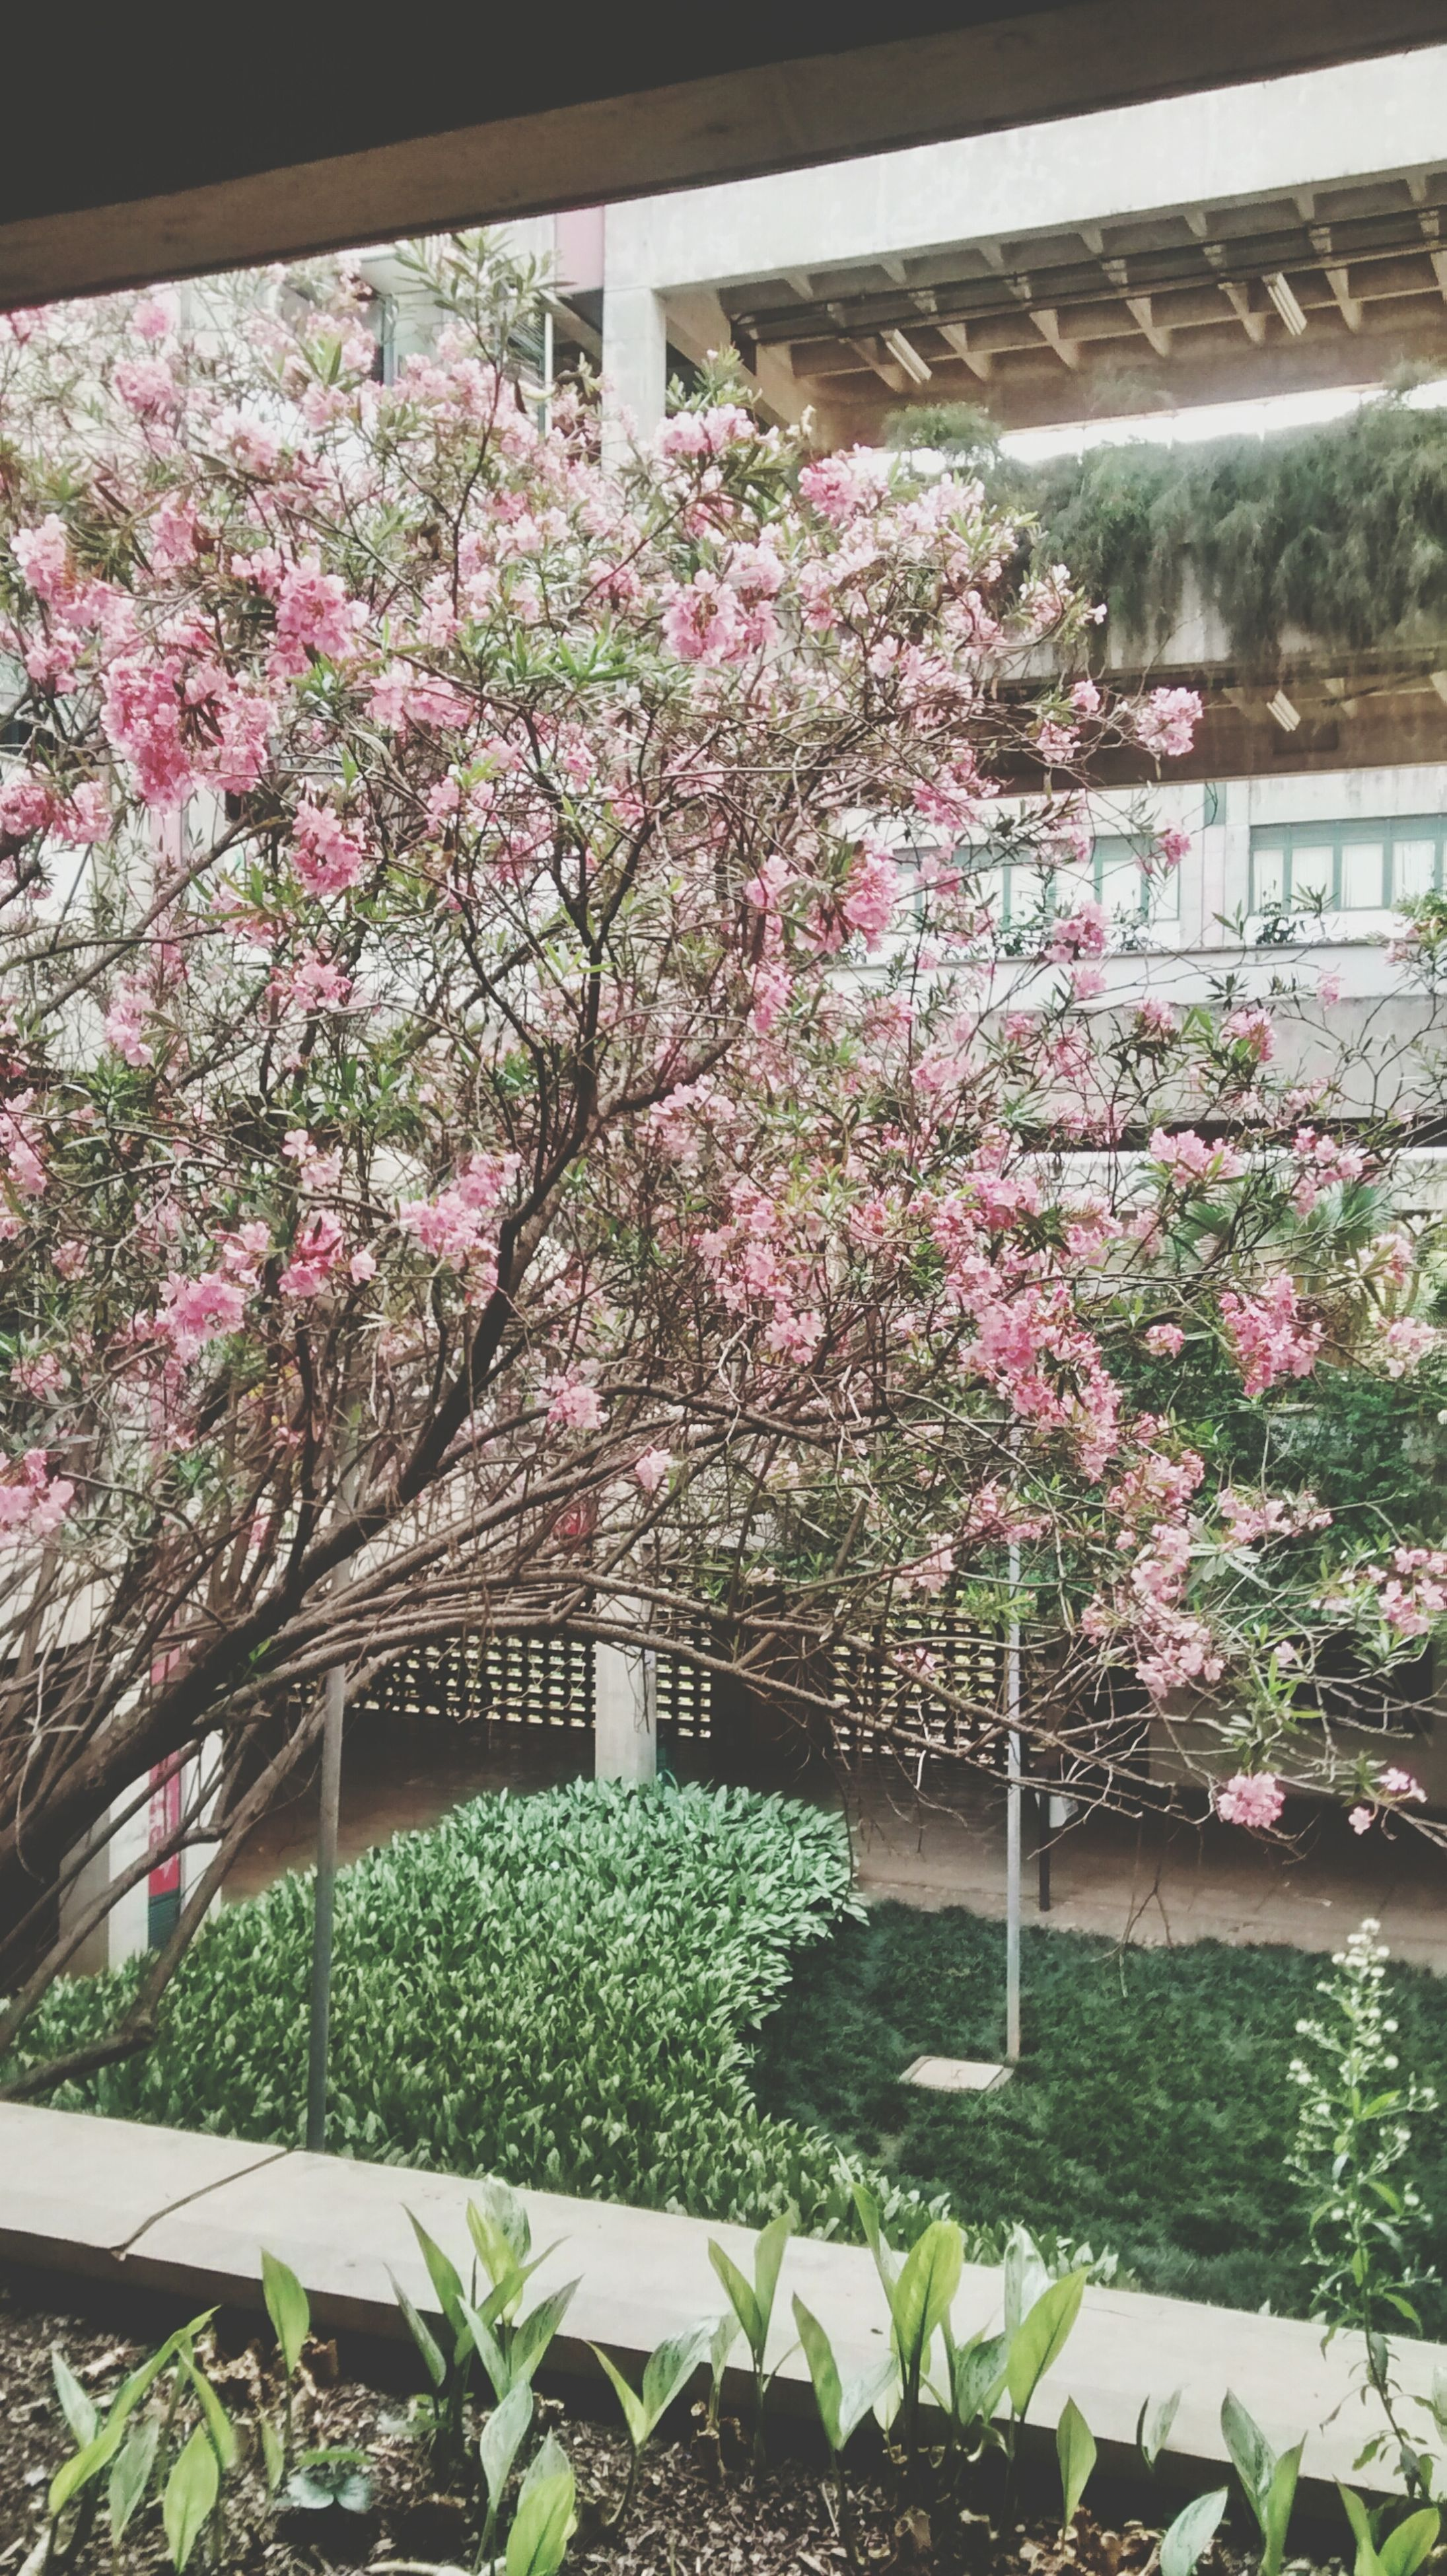 flower, freshness, growth, fragility, pink color, plant, built structure, beauty in nature, blossom, architecture, blooming, in bloom, nature, building exterior, petal, tree, leaf, springtime, day, railing